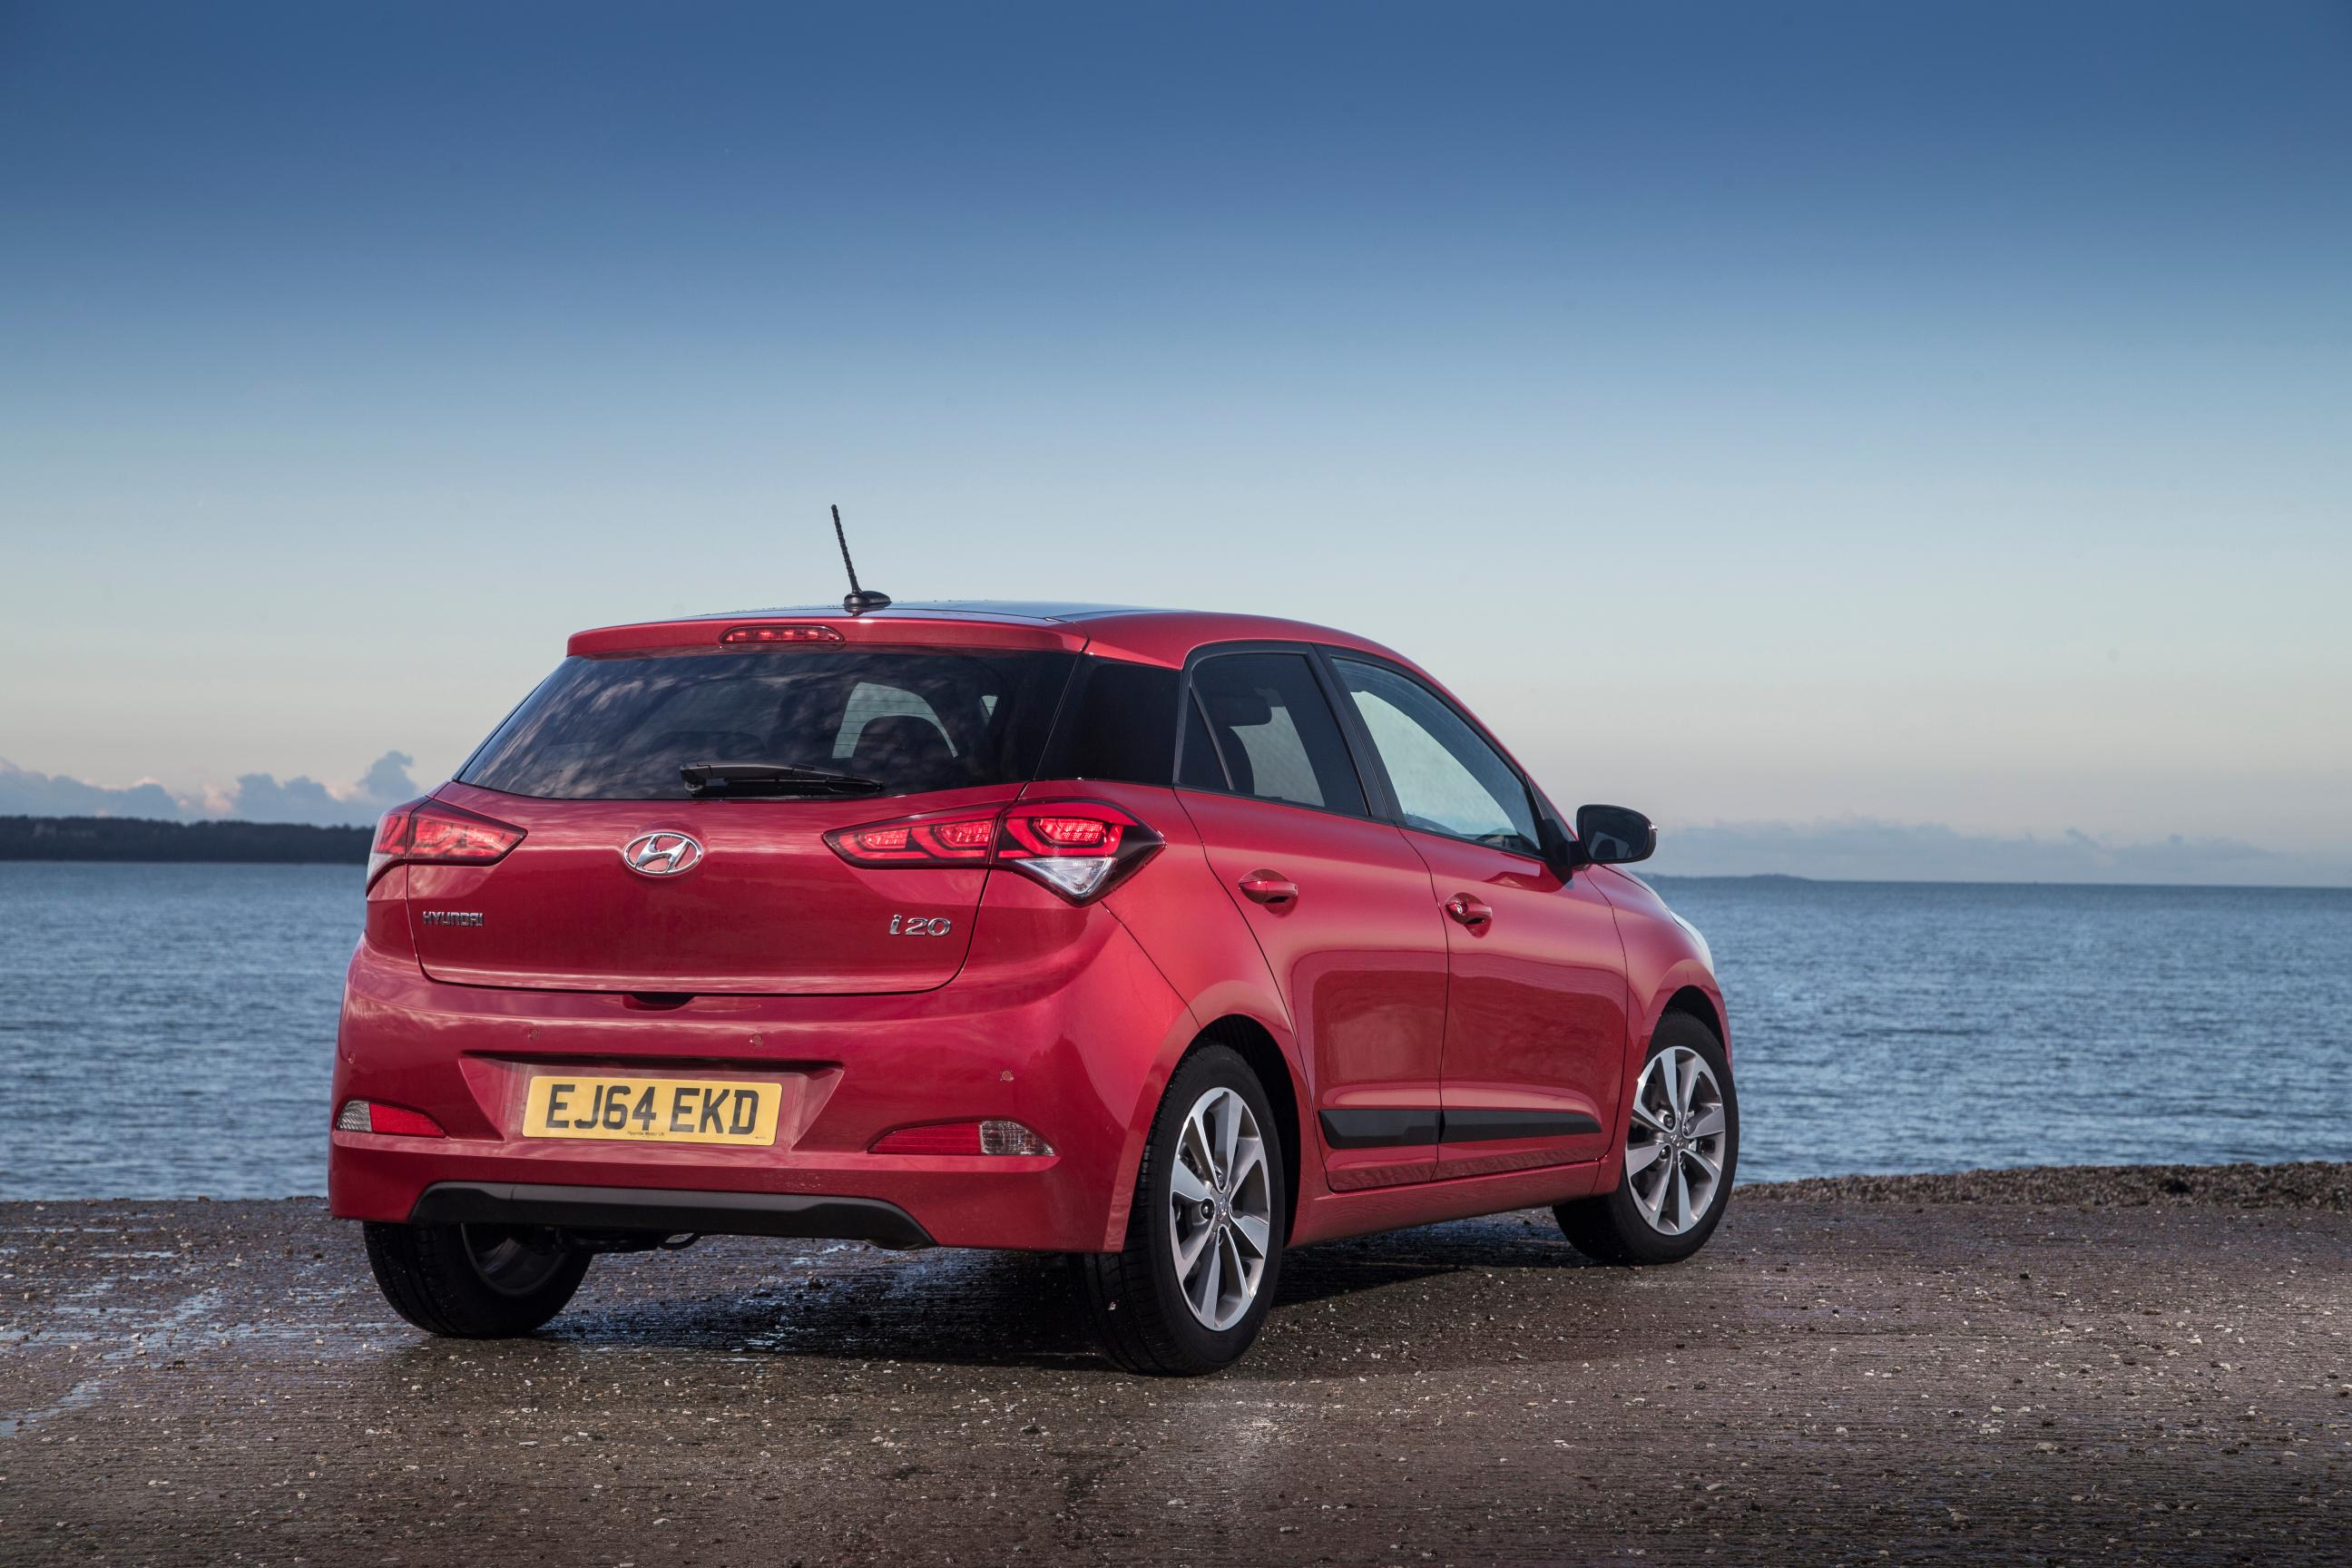 2015 hyundai i20 goes on sale in britain for slightly less than a vw polo autoevolution. Black Bedroom Furniture Sets. Home Design Ideas